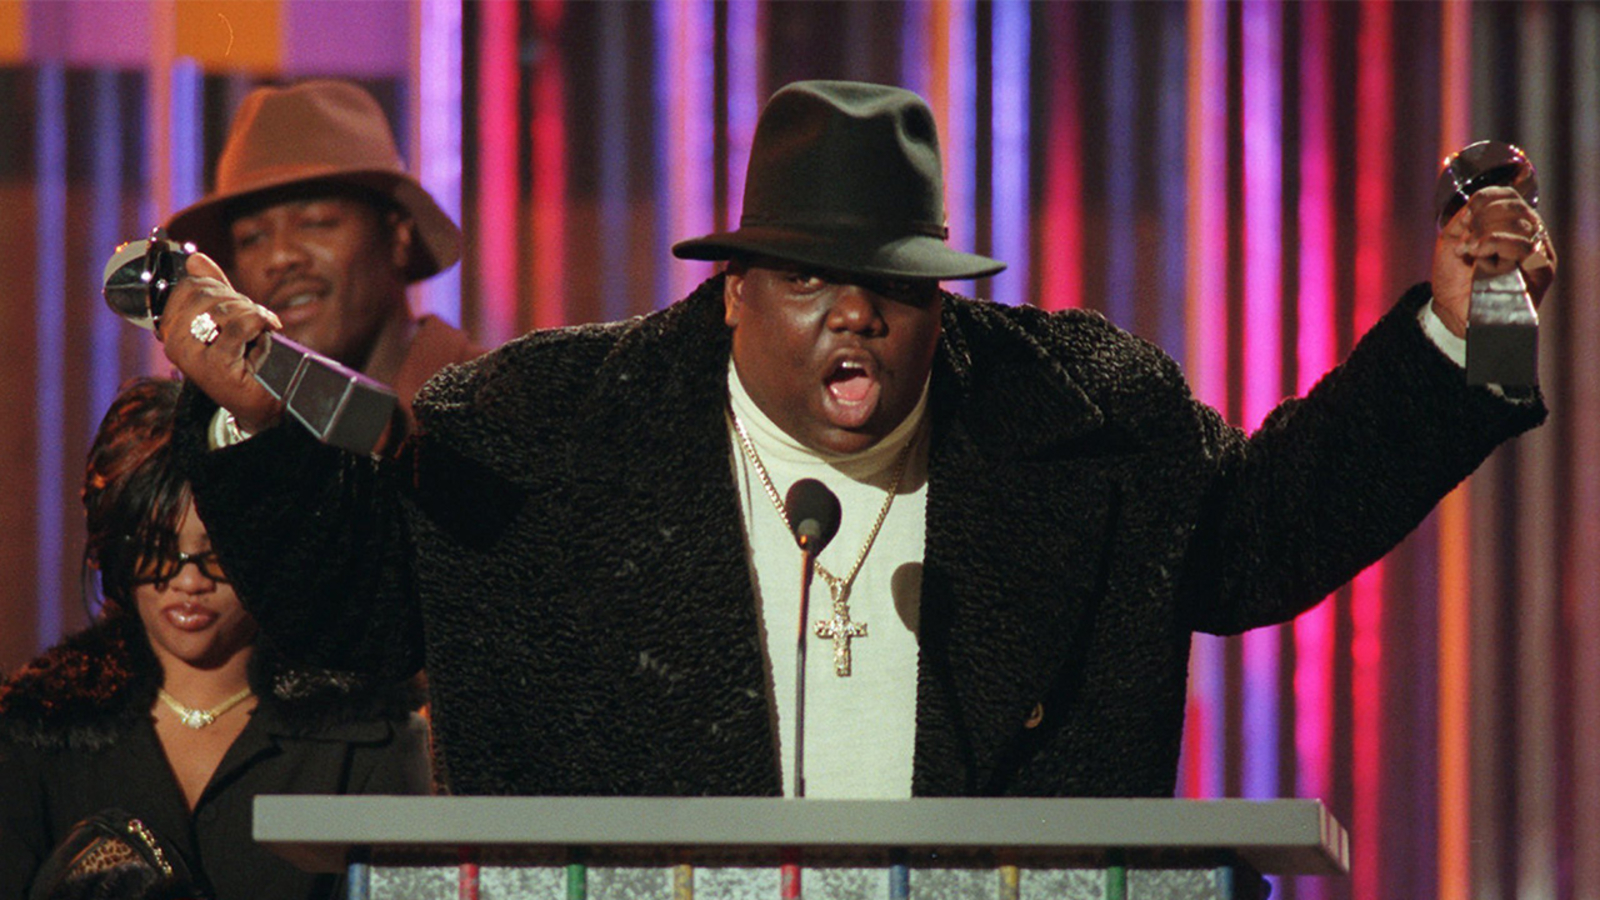 The Notorious B.I.G.'s birthday brings word of a street in his name